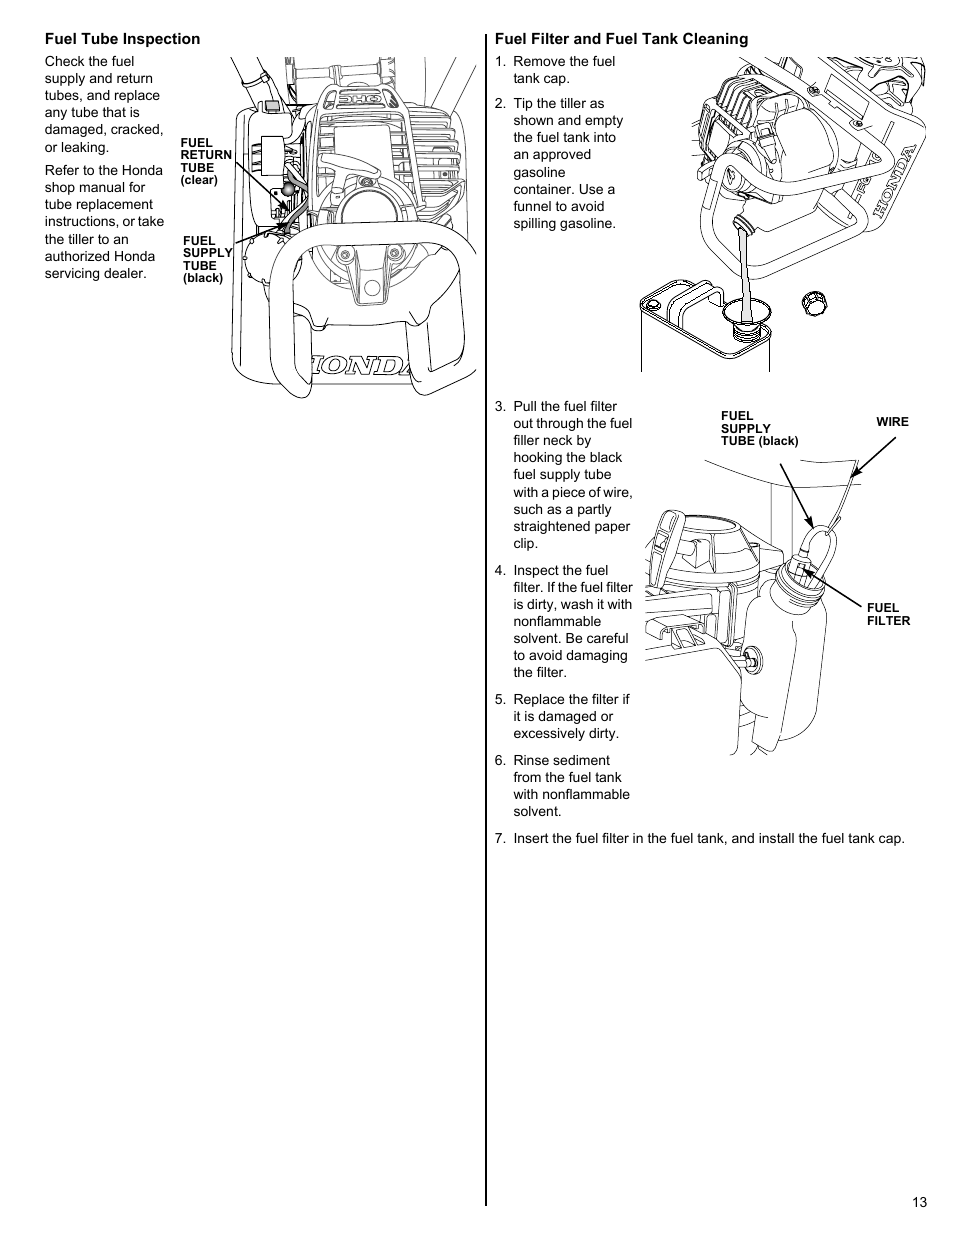 hight resolution of fuel tube inspection fuel filter and fuel tank cleaning honda fg110 user manual page 13 24